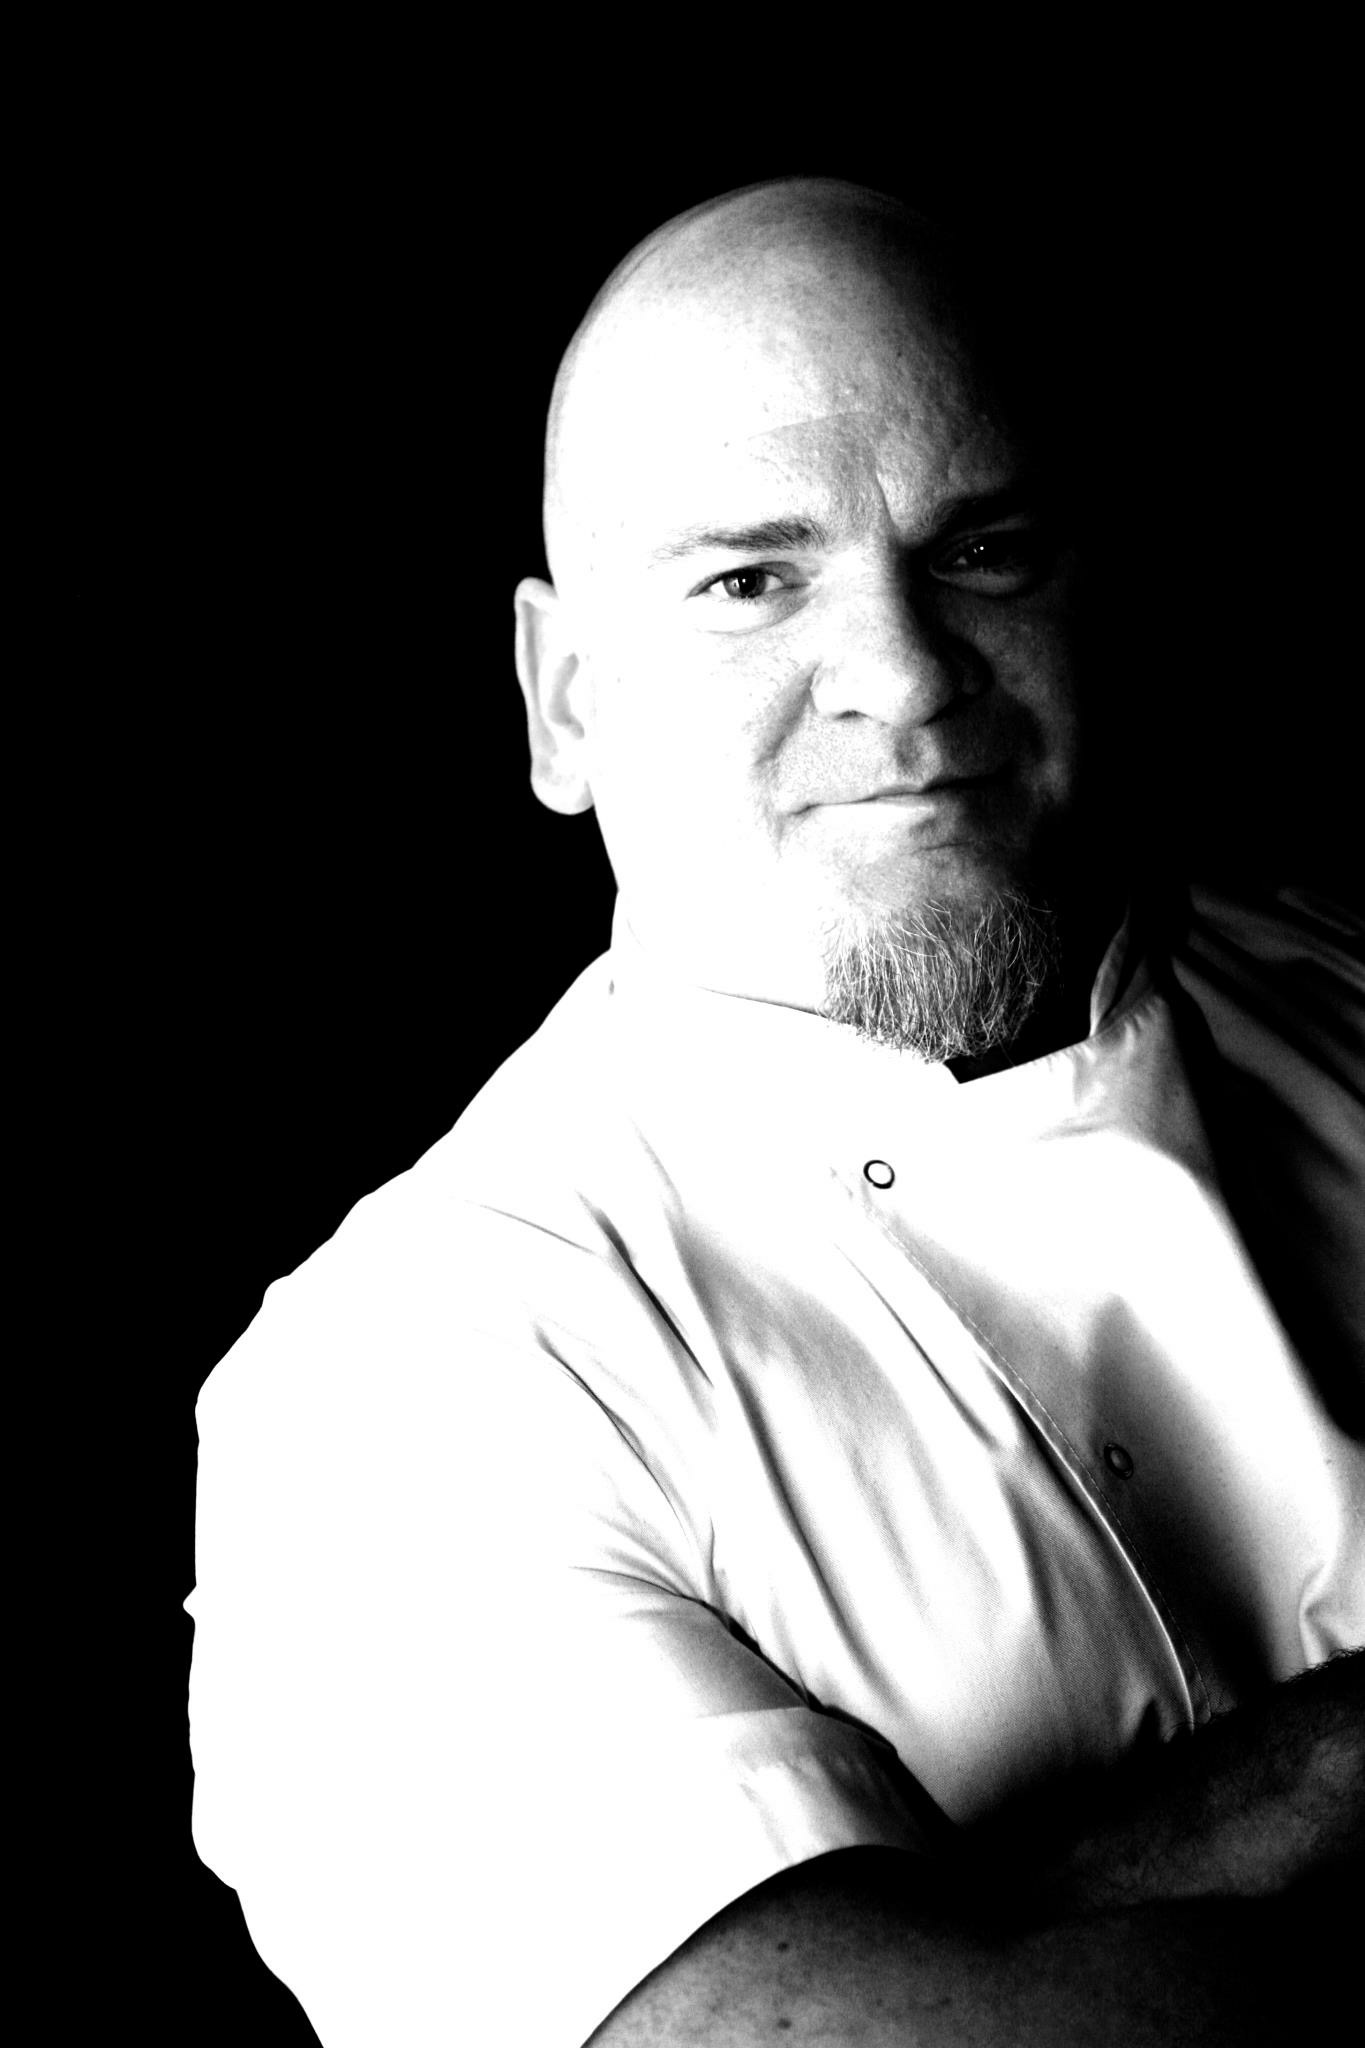 Simon Bolsover joins as executive head chef